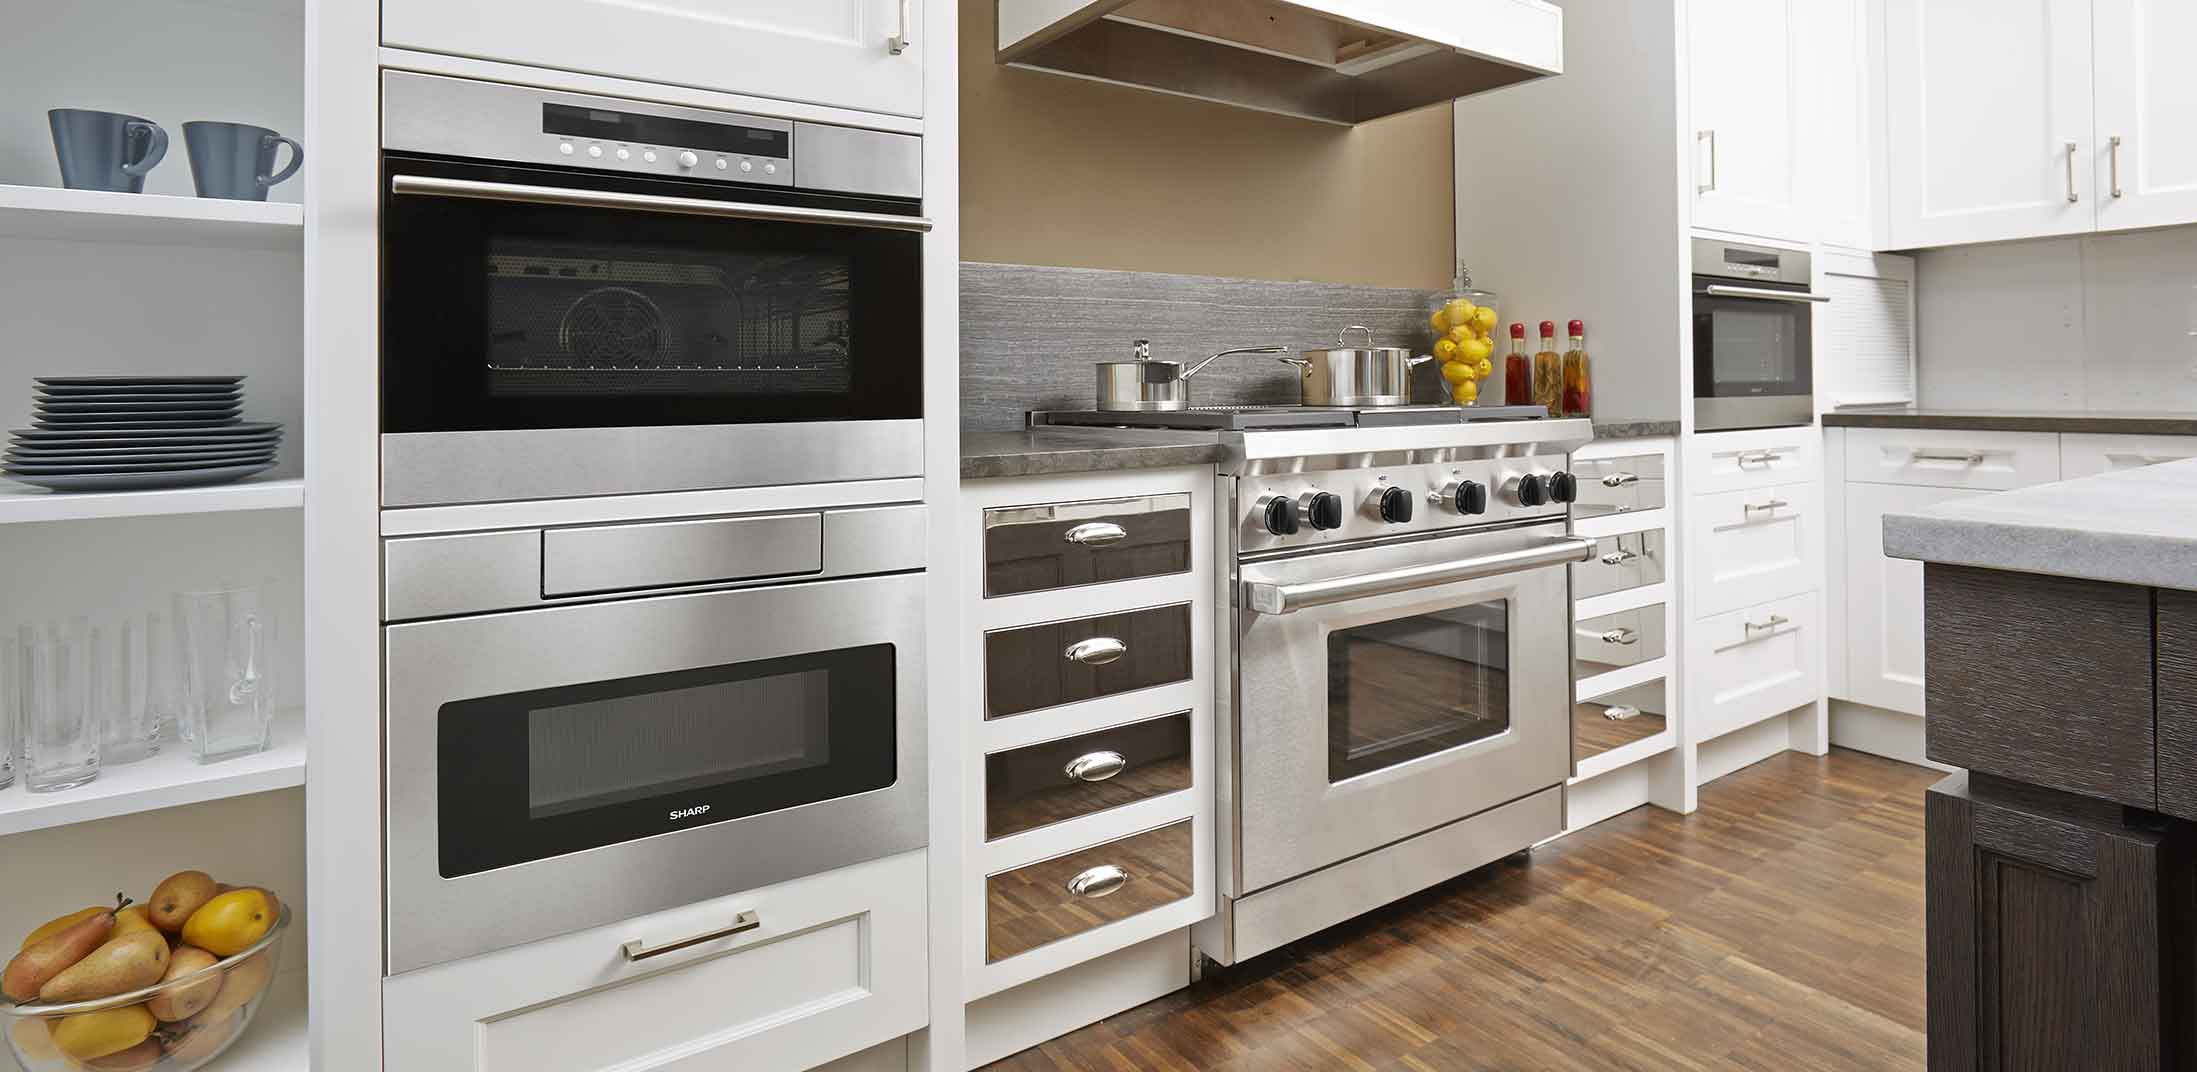 Smd Microwave Drawer Oven Inch Ovens